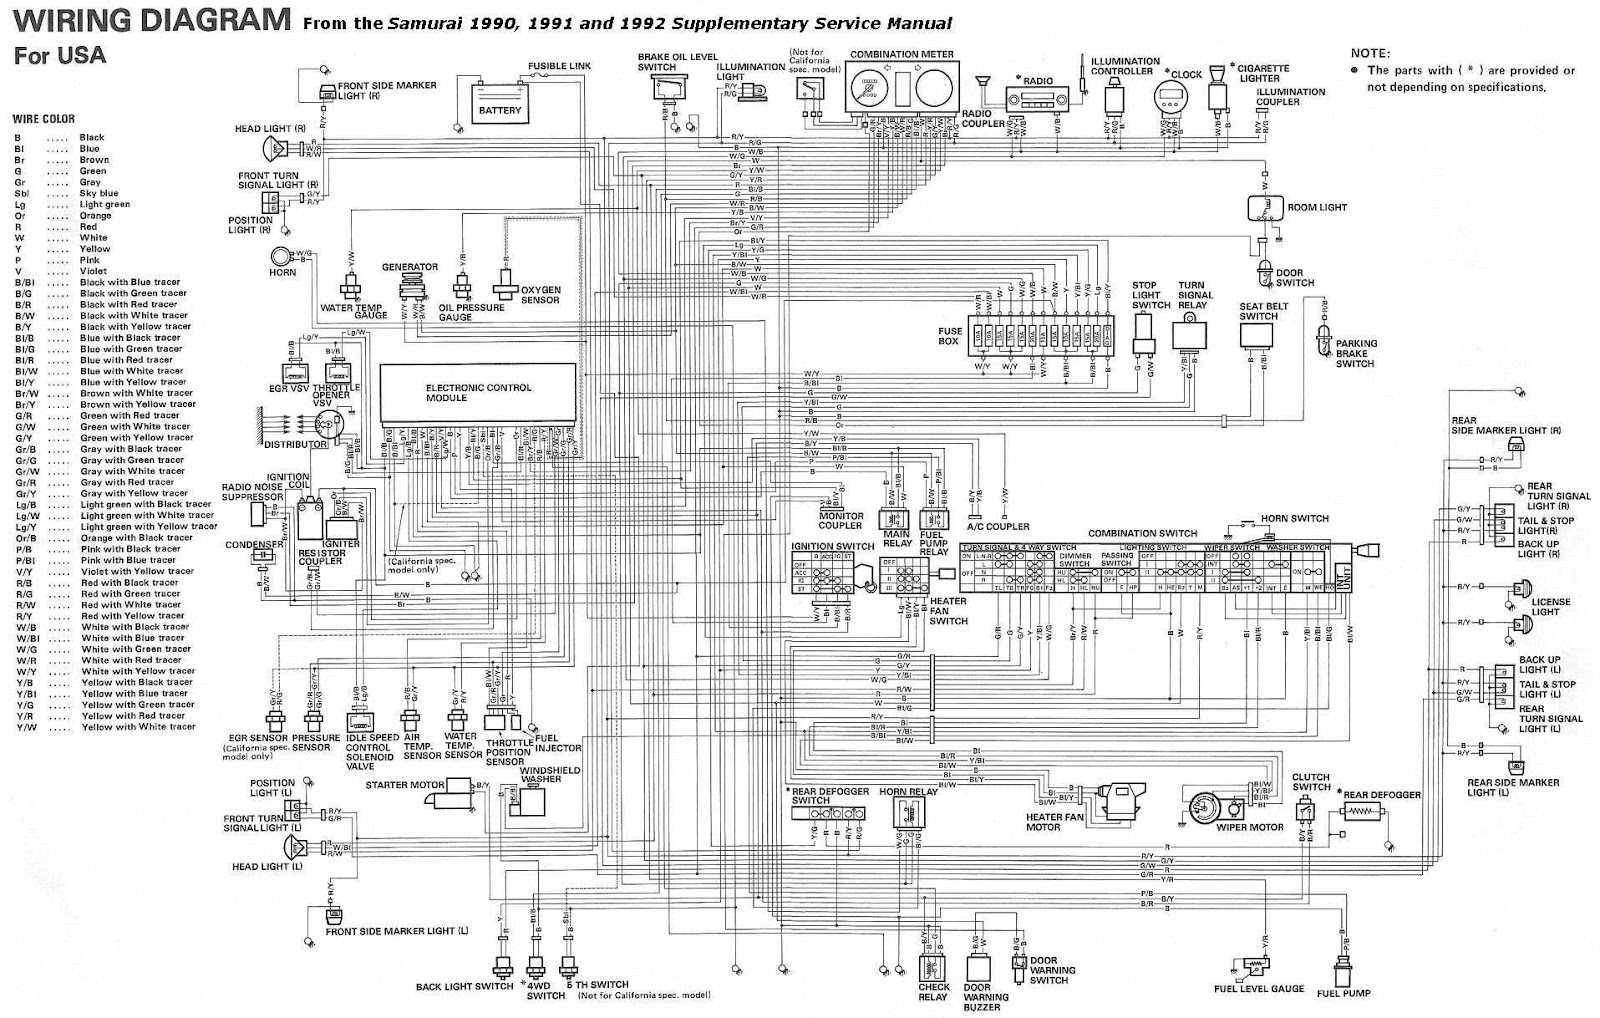 excellent 1990 softail wiring diagram gallery - electrical circuit, Wiring diagram